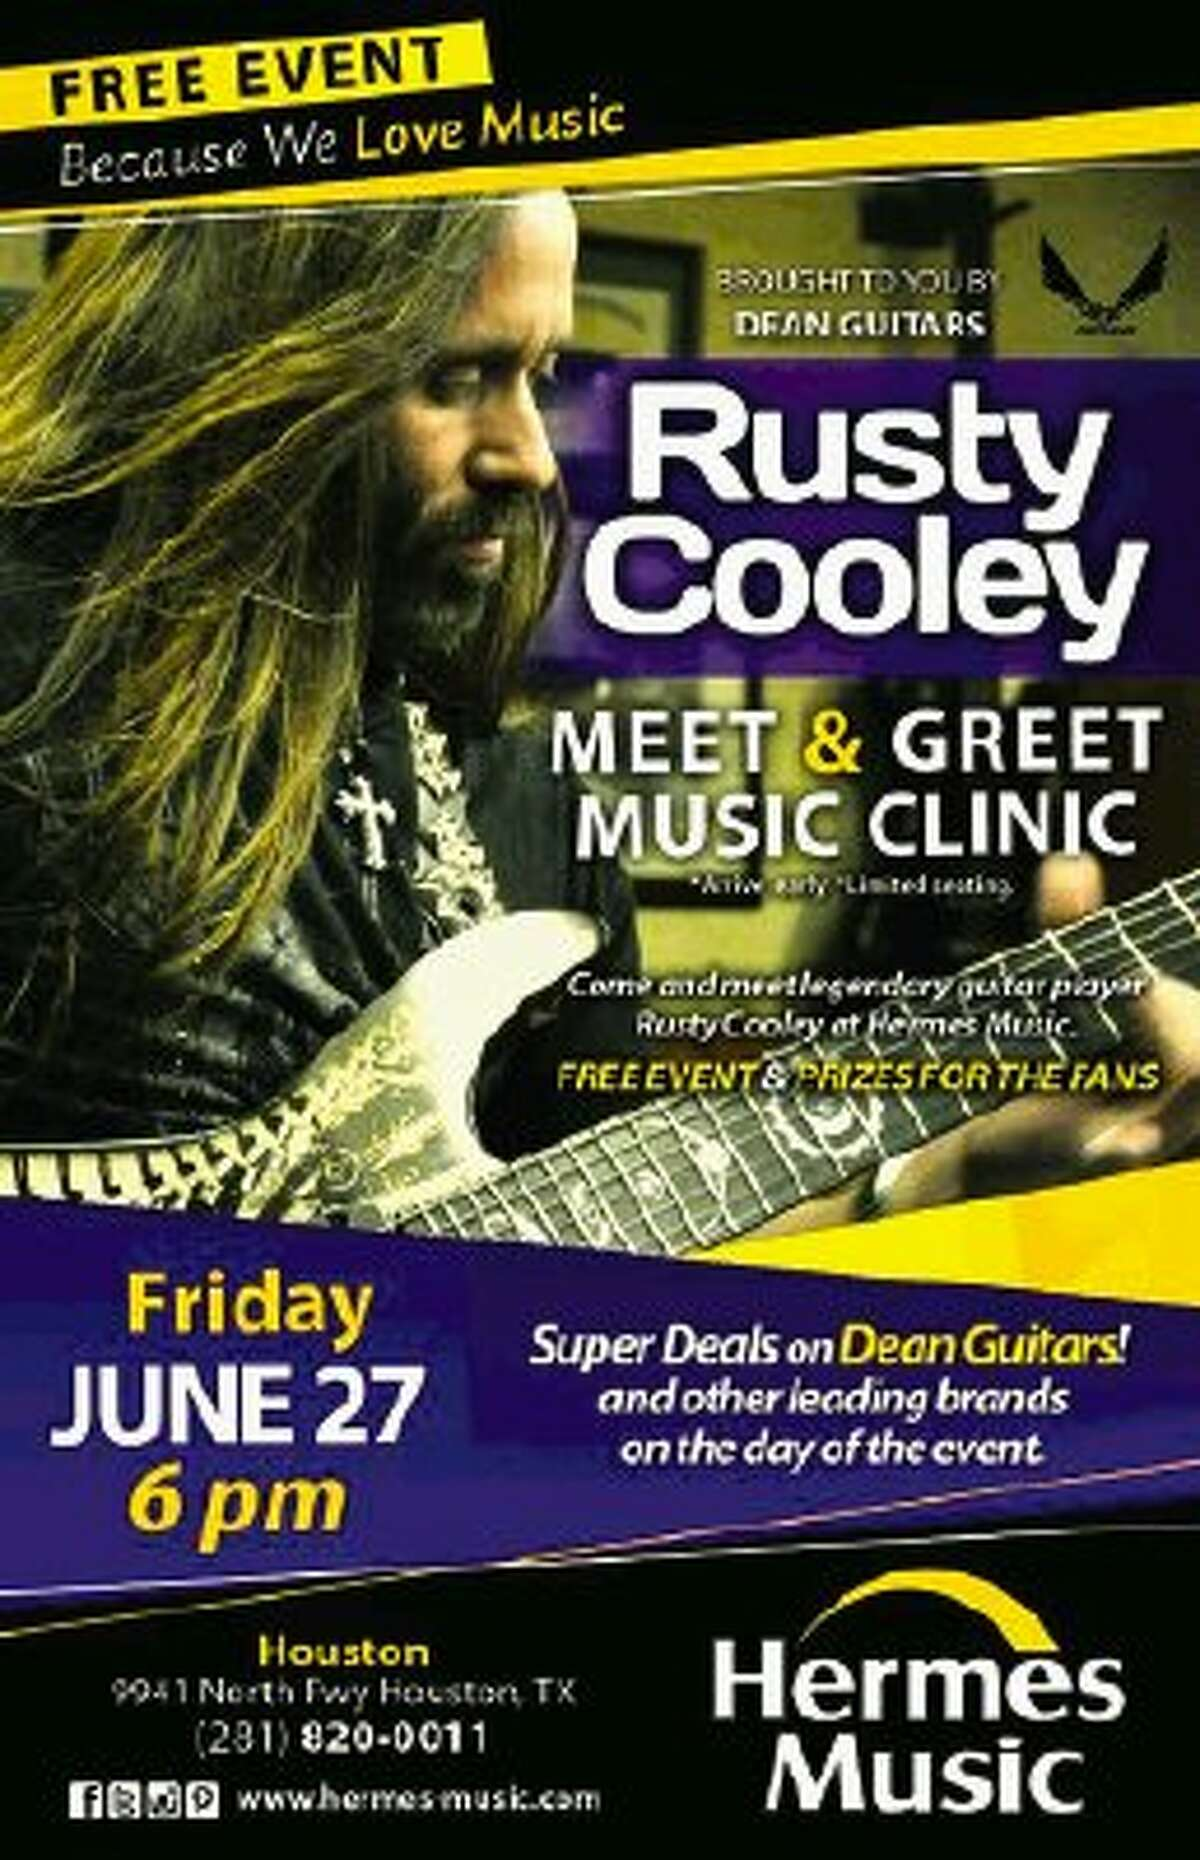 On Friday, June 27, Hermes Music will welcome shred guitar legend Rusty Cooley who will be making a live appearance at the store at 6 p.m.